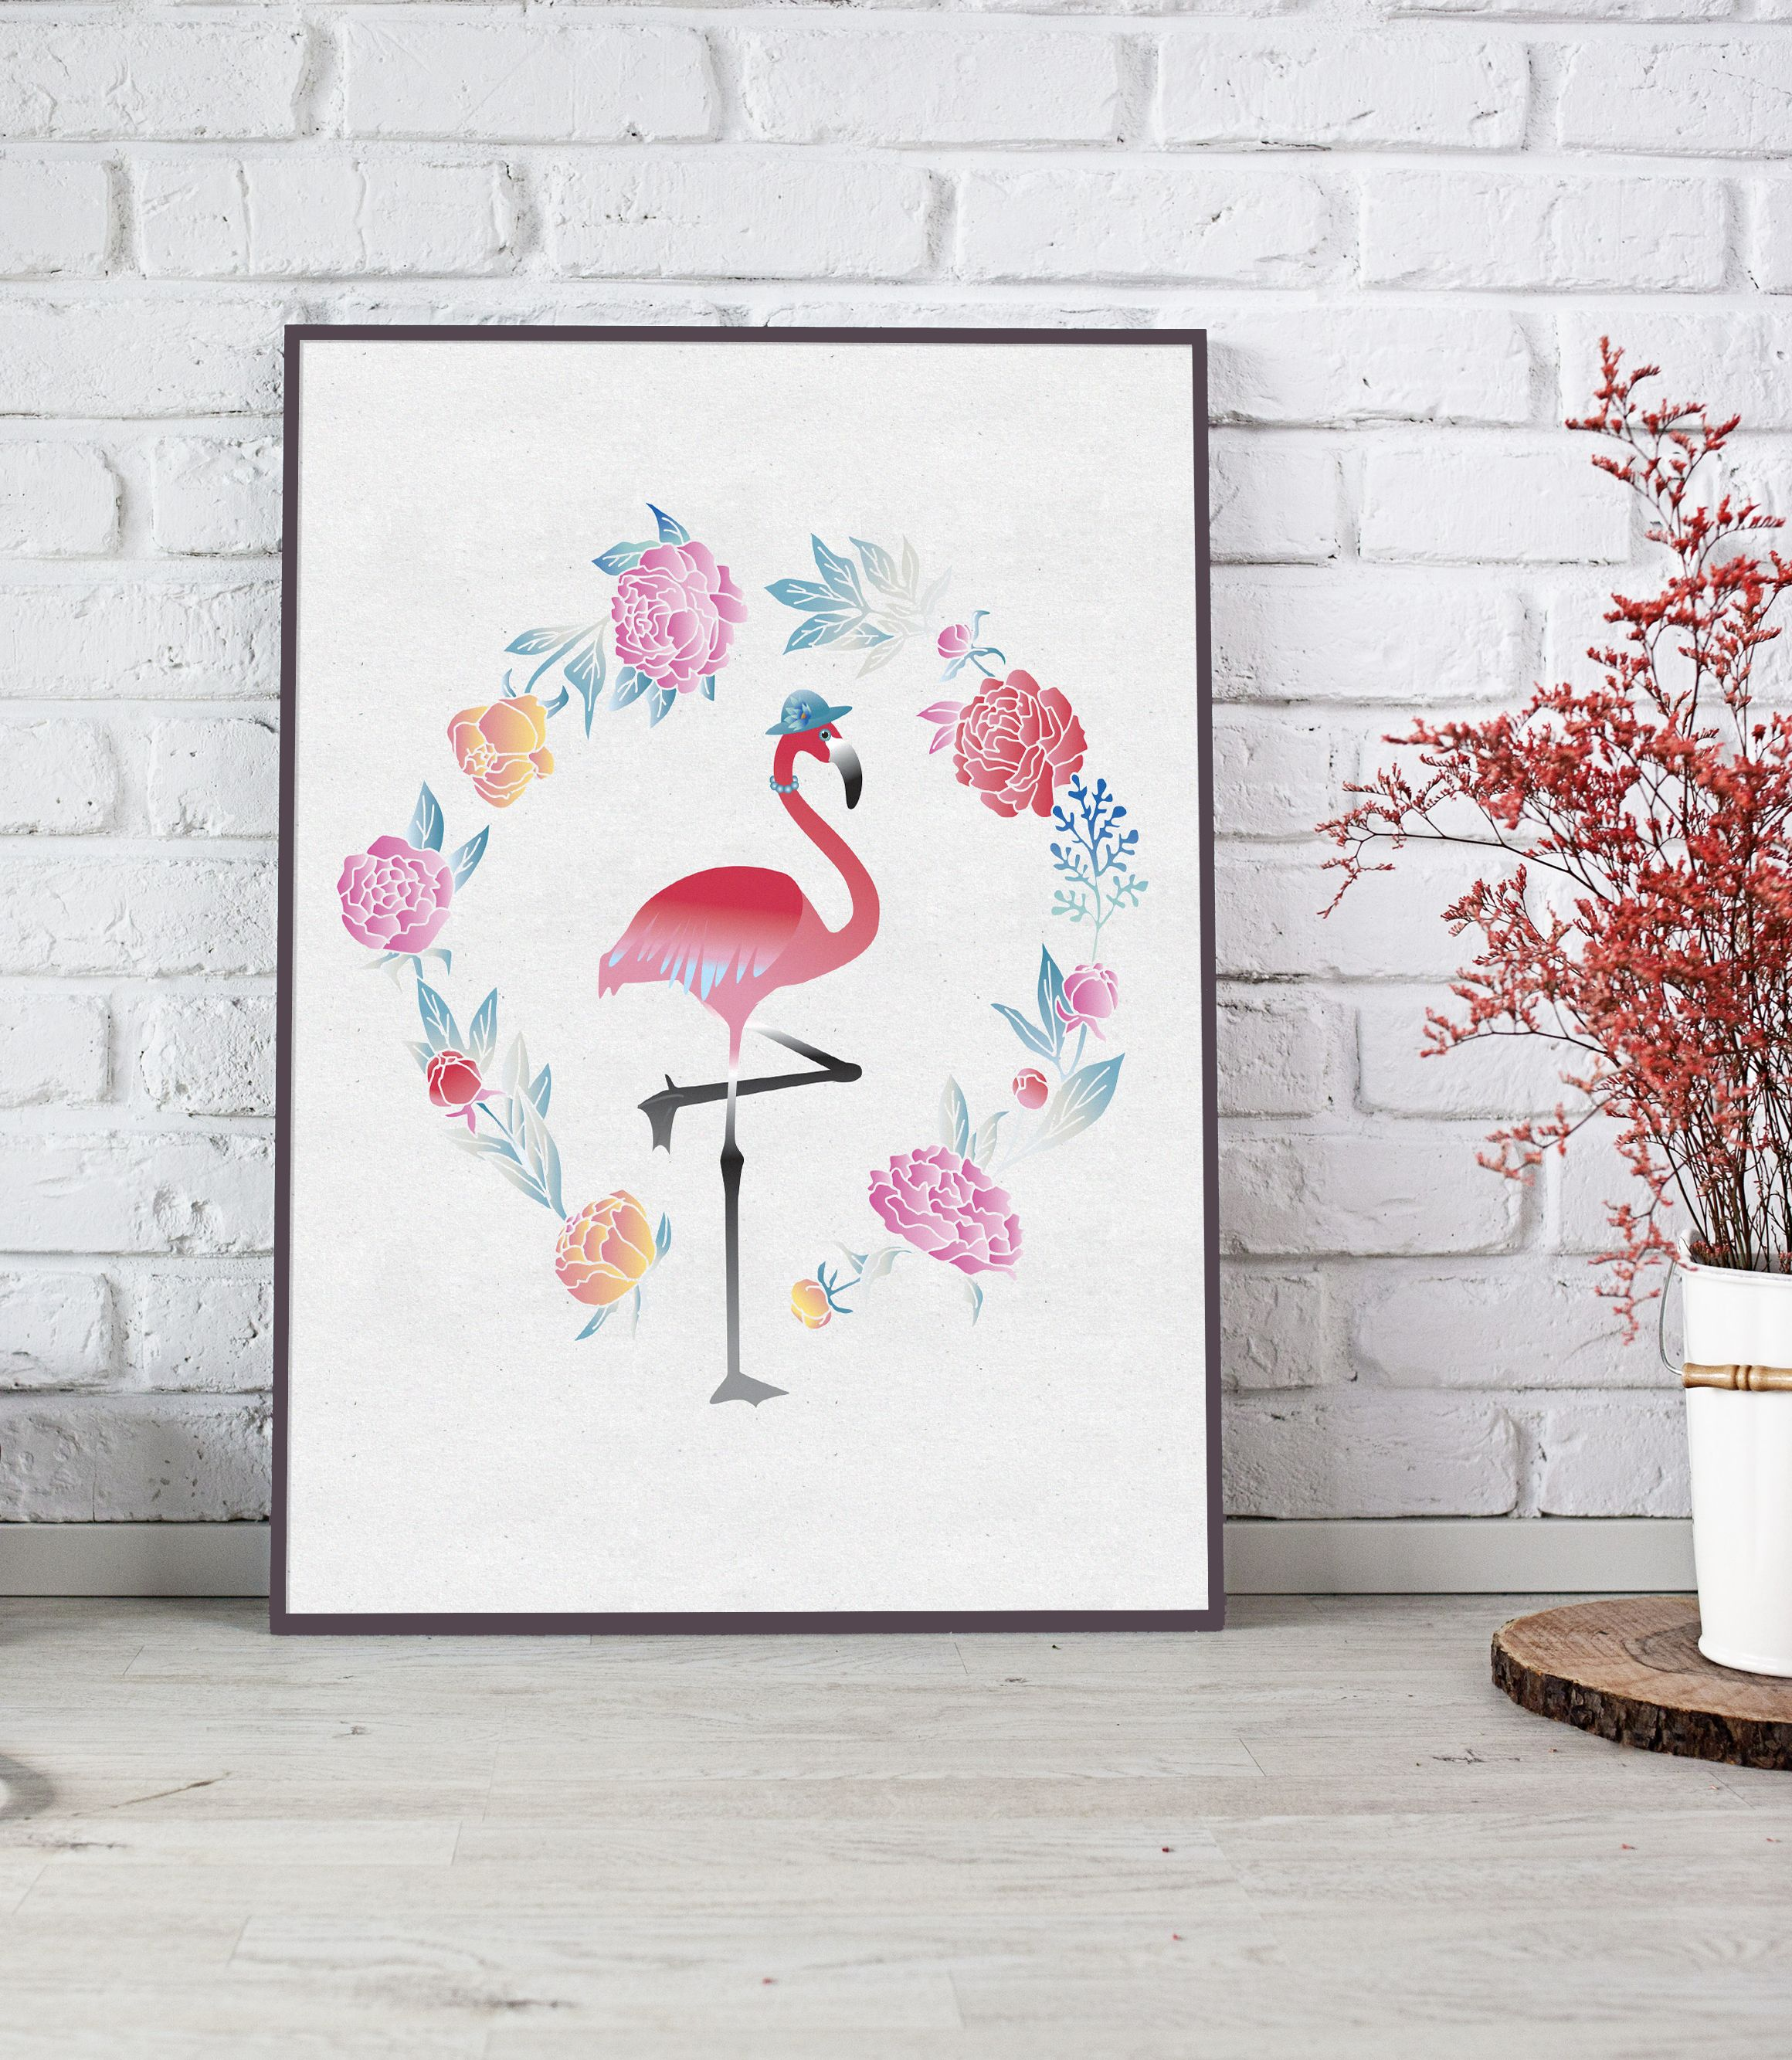 Flamingo Art, Flamingo Print, Printable Art, Poster, Flamingo, Birds, Greenery